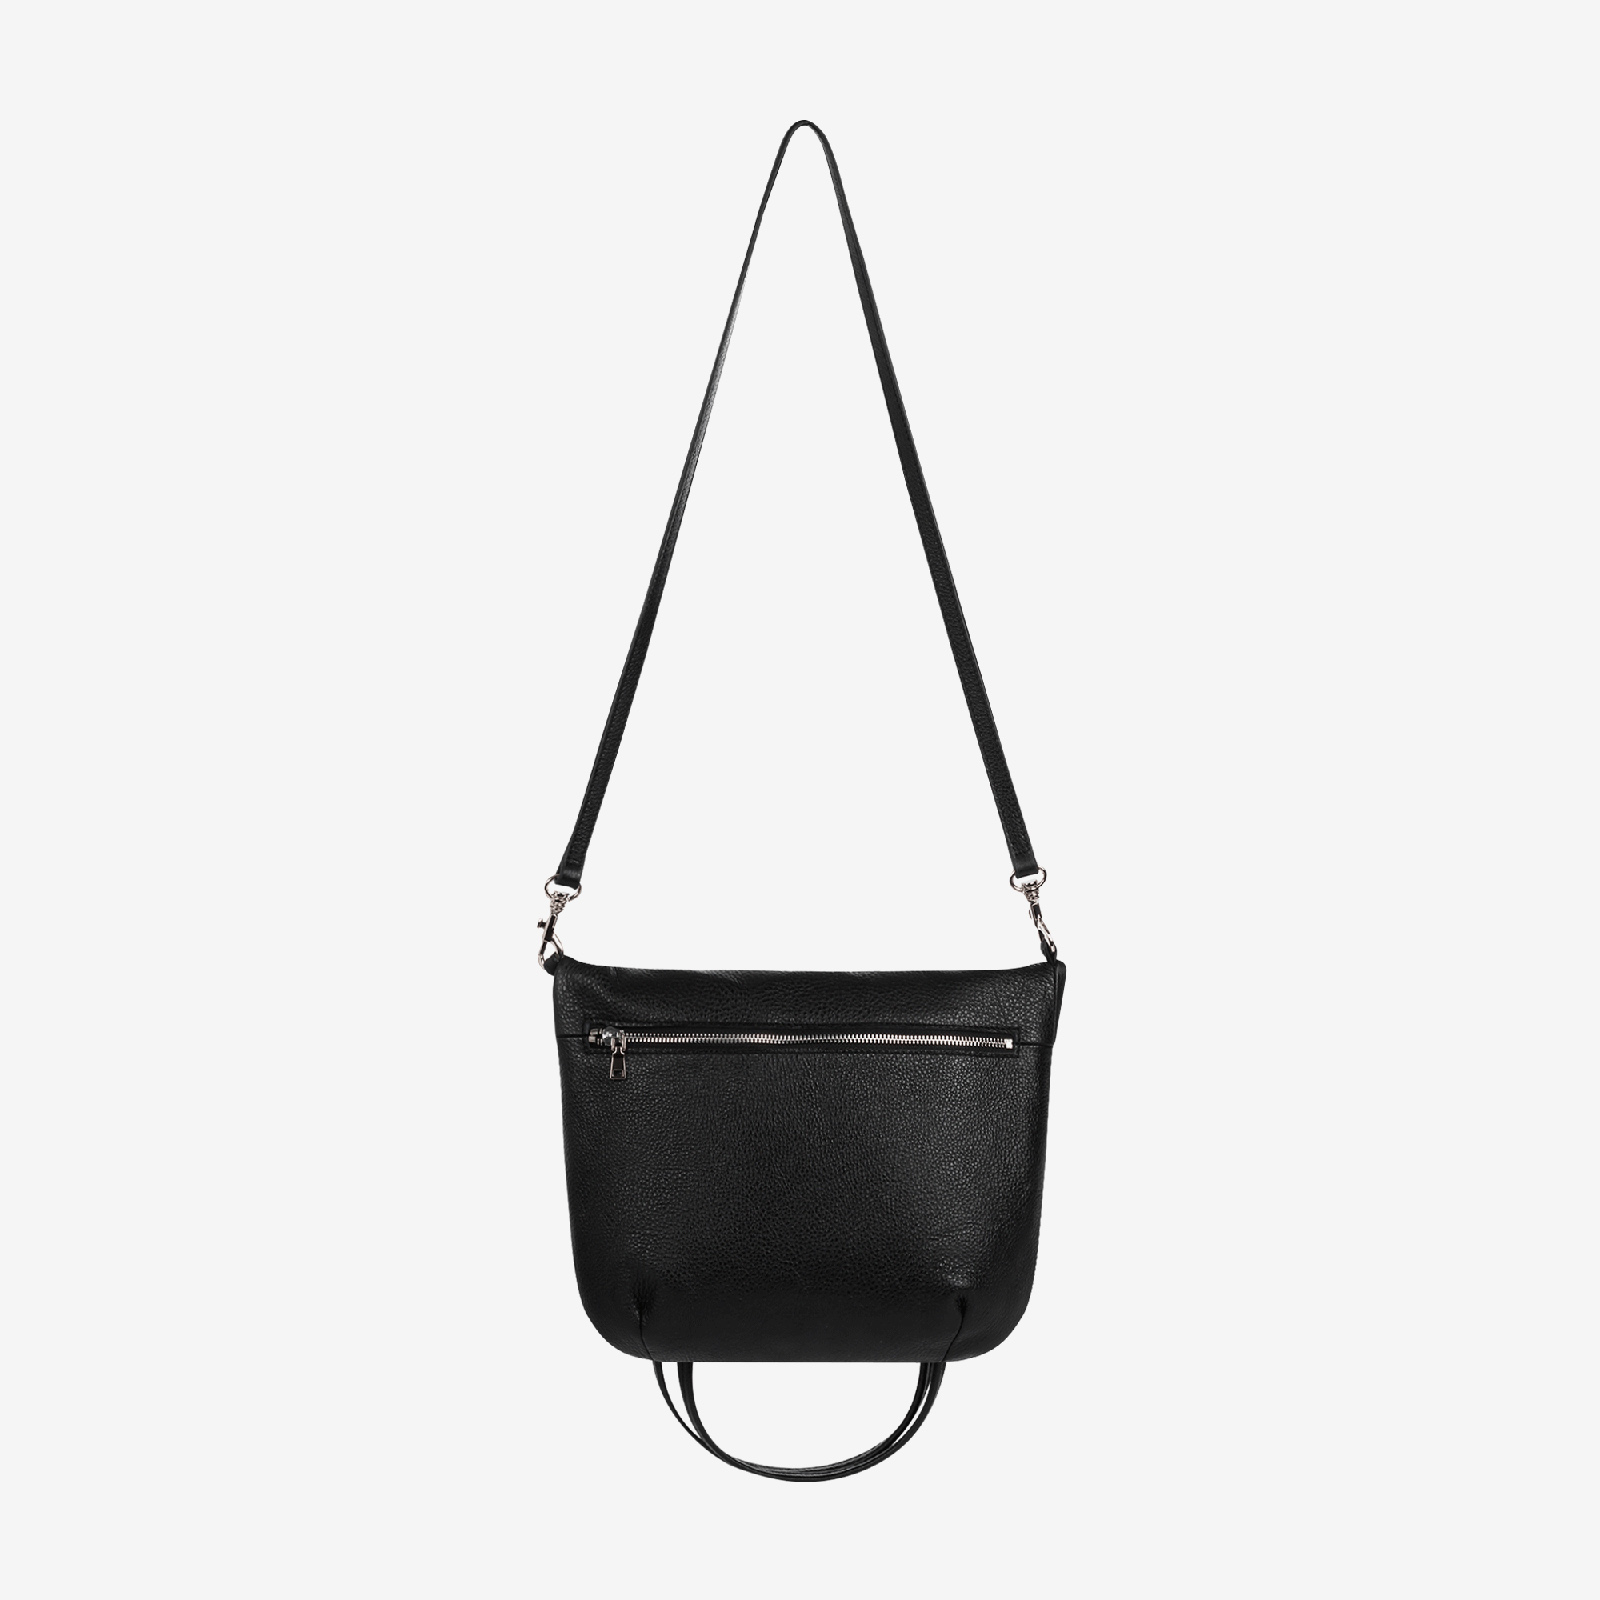 Shoulder bag product image